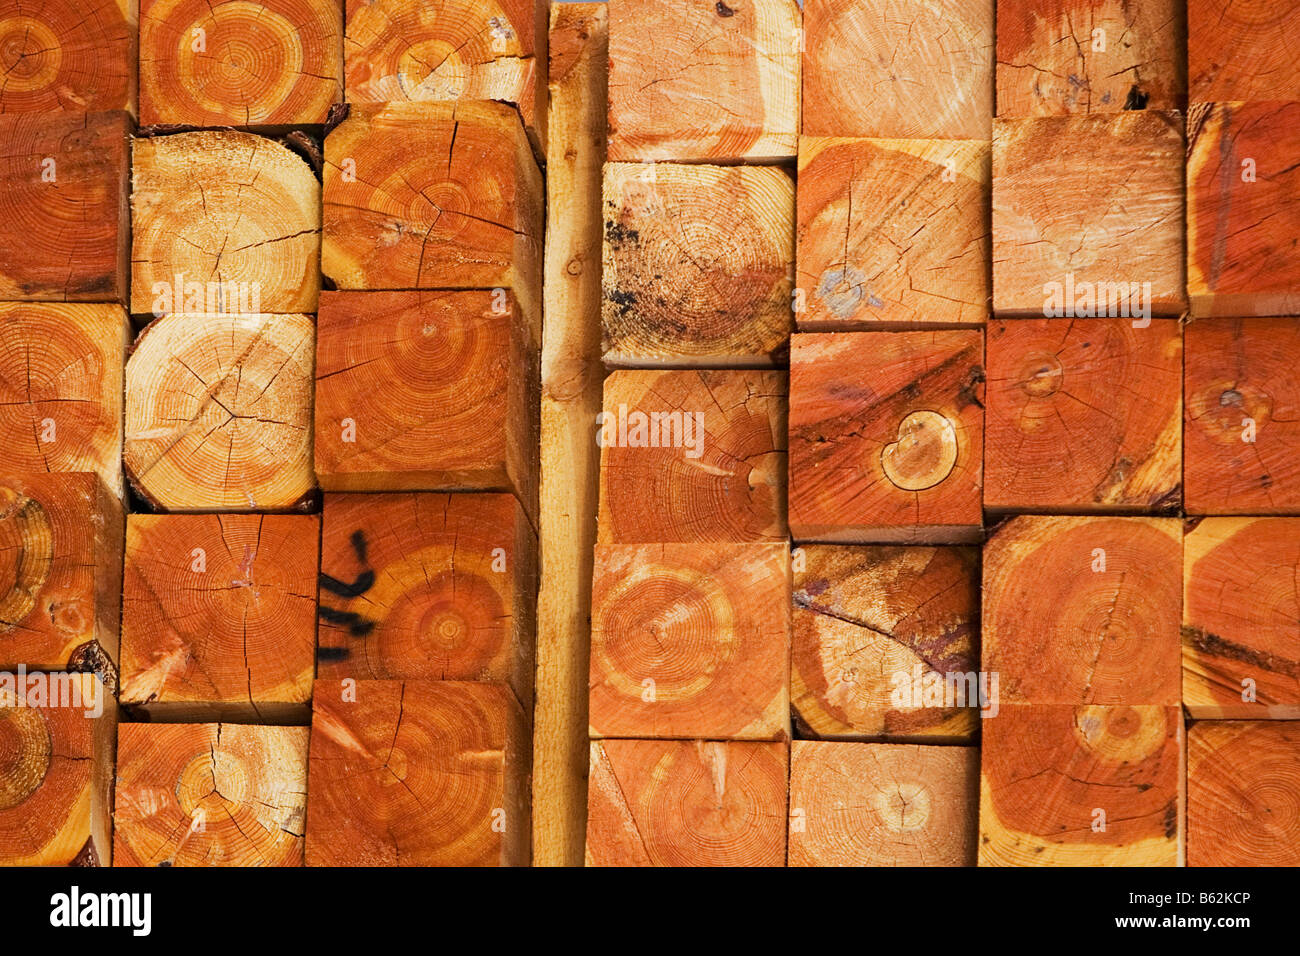 Close-up of a stack of timbers - Stock Image